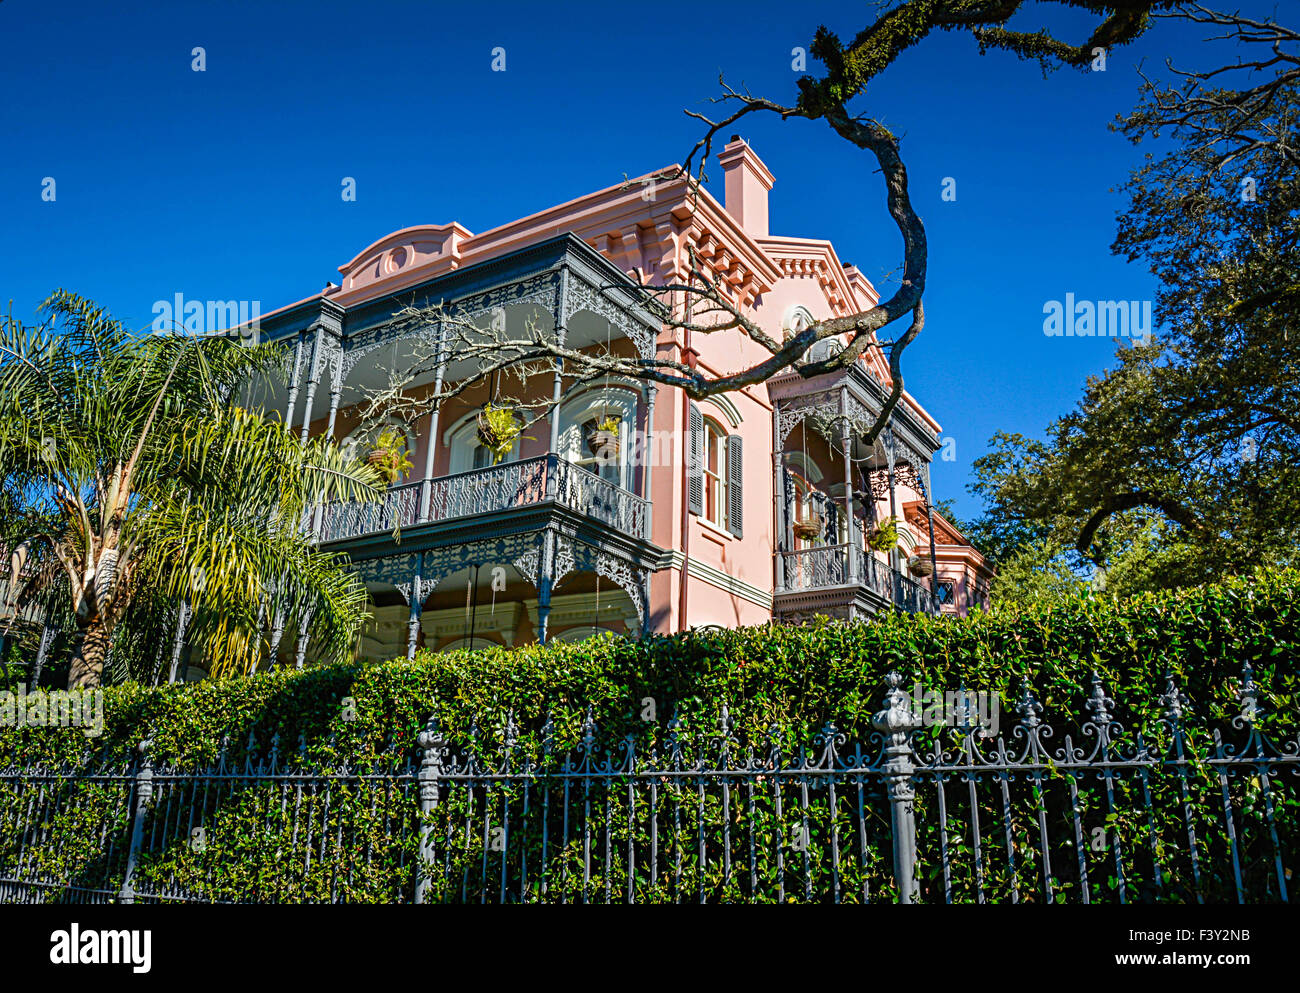 Superior The Beautifully Unique Pink Italianate Joseph Carroll House With Ornate  Iron Fencing In The Garden District In New Orleans, LA